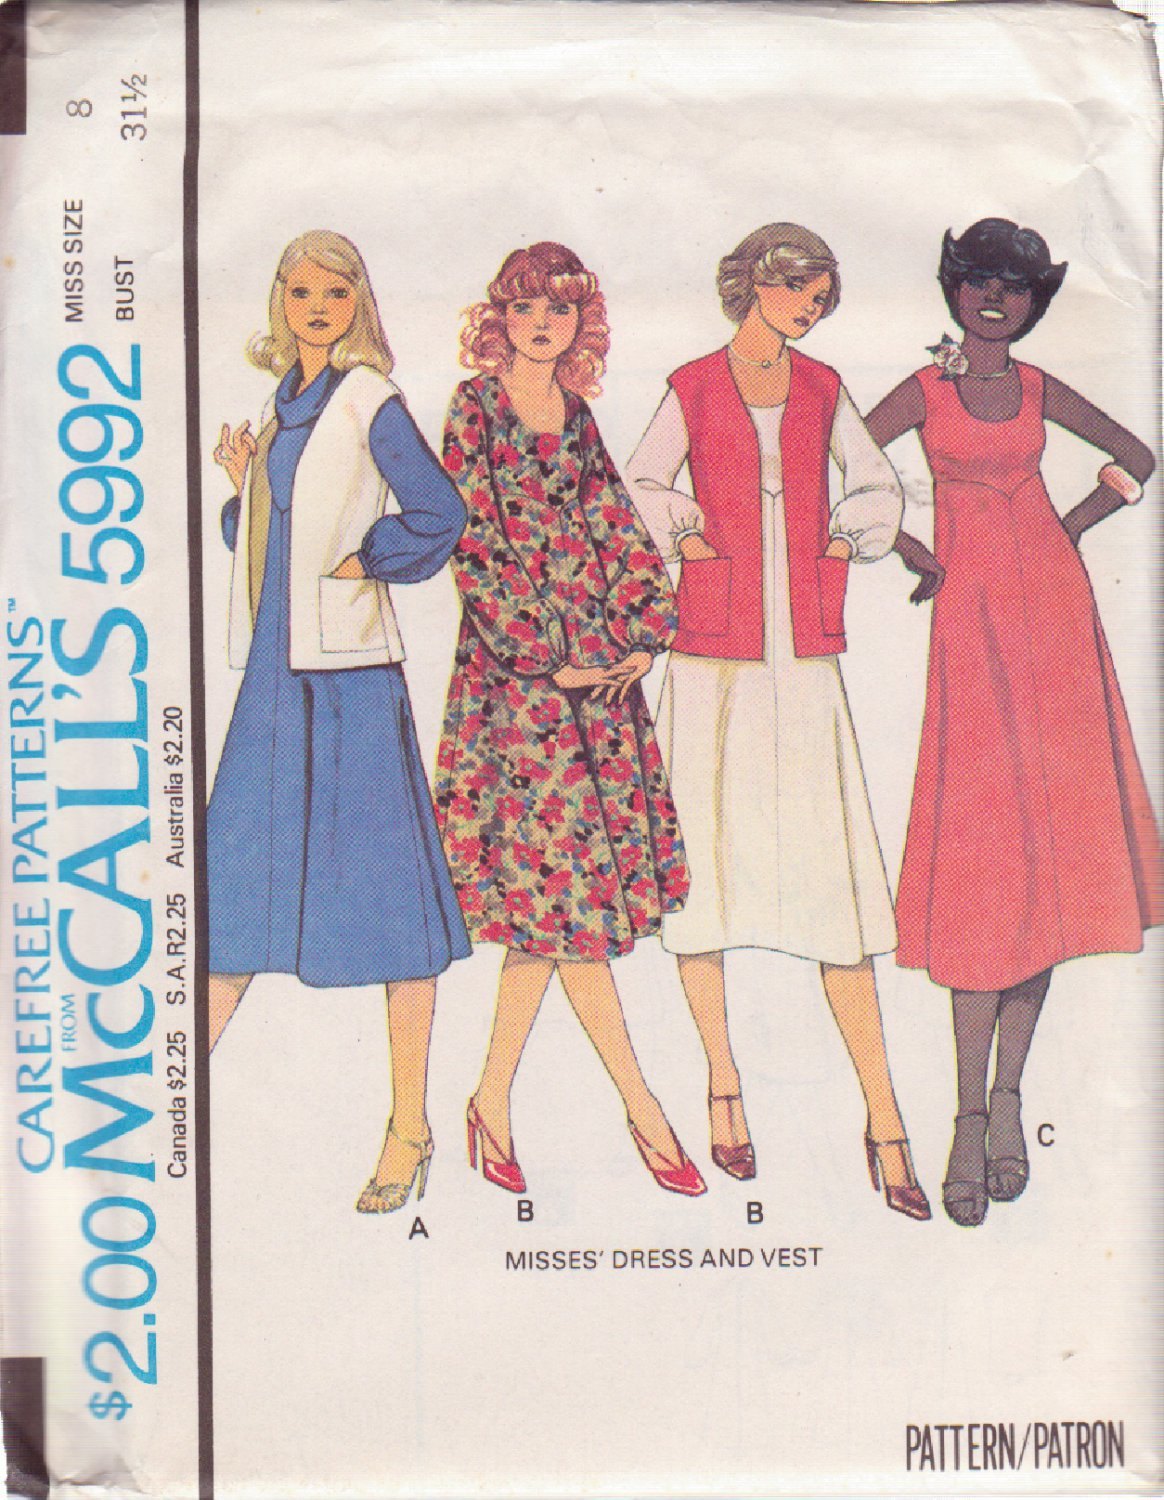 McCALL'S PATTERN 5992 SZ 8 MISSES' DRESS IN 3 VARIATIONS AND VEST UNCUT